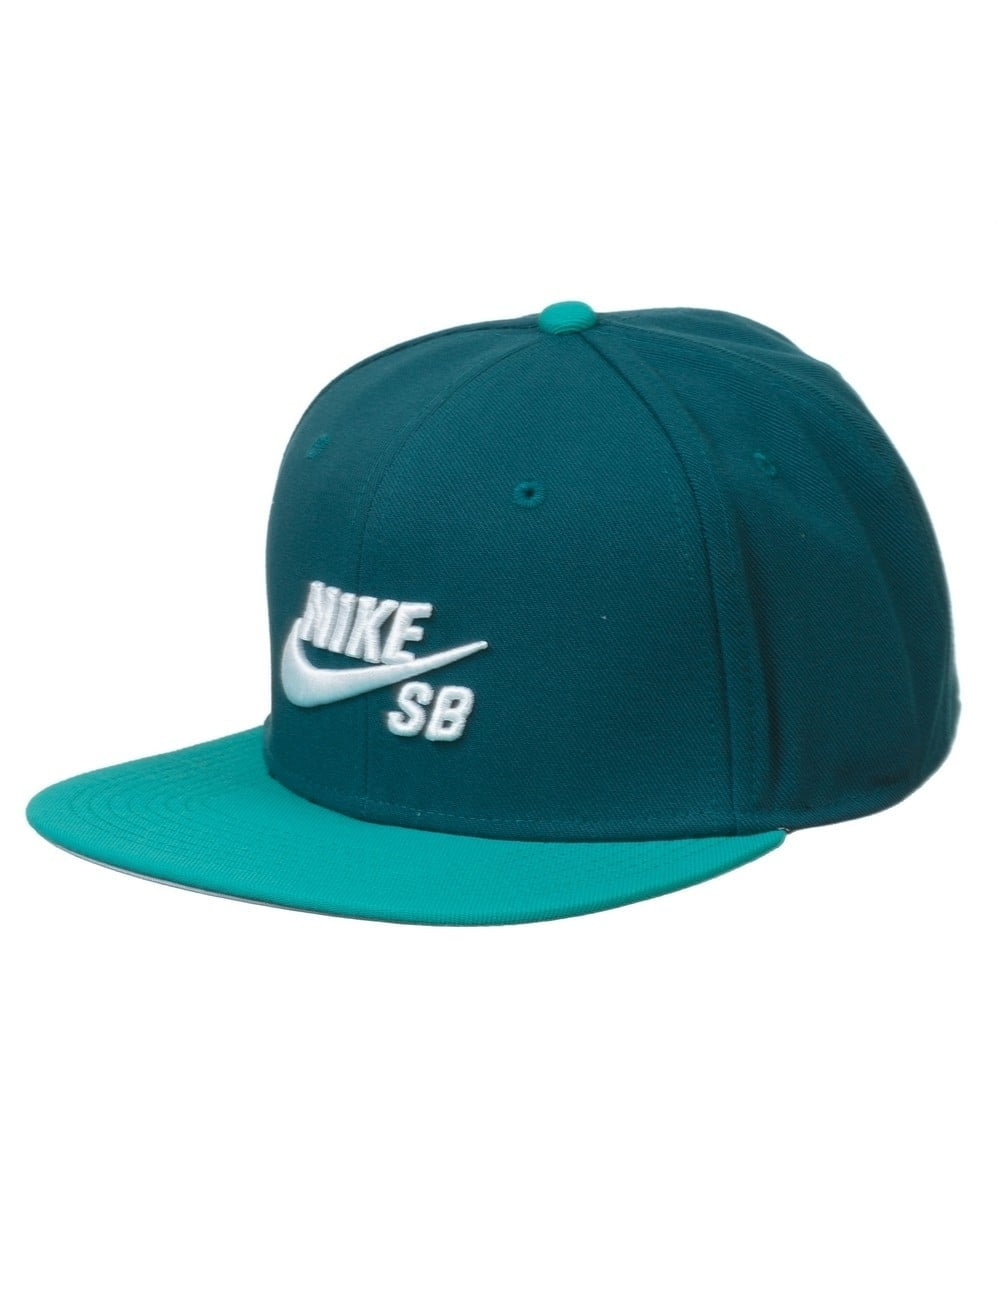 Nike SB Icon Logo Pro Snapback Hat - Midnight Turquoise Teal ... a17be21721a